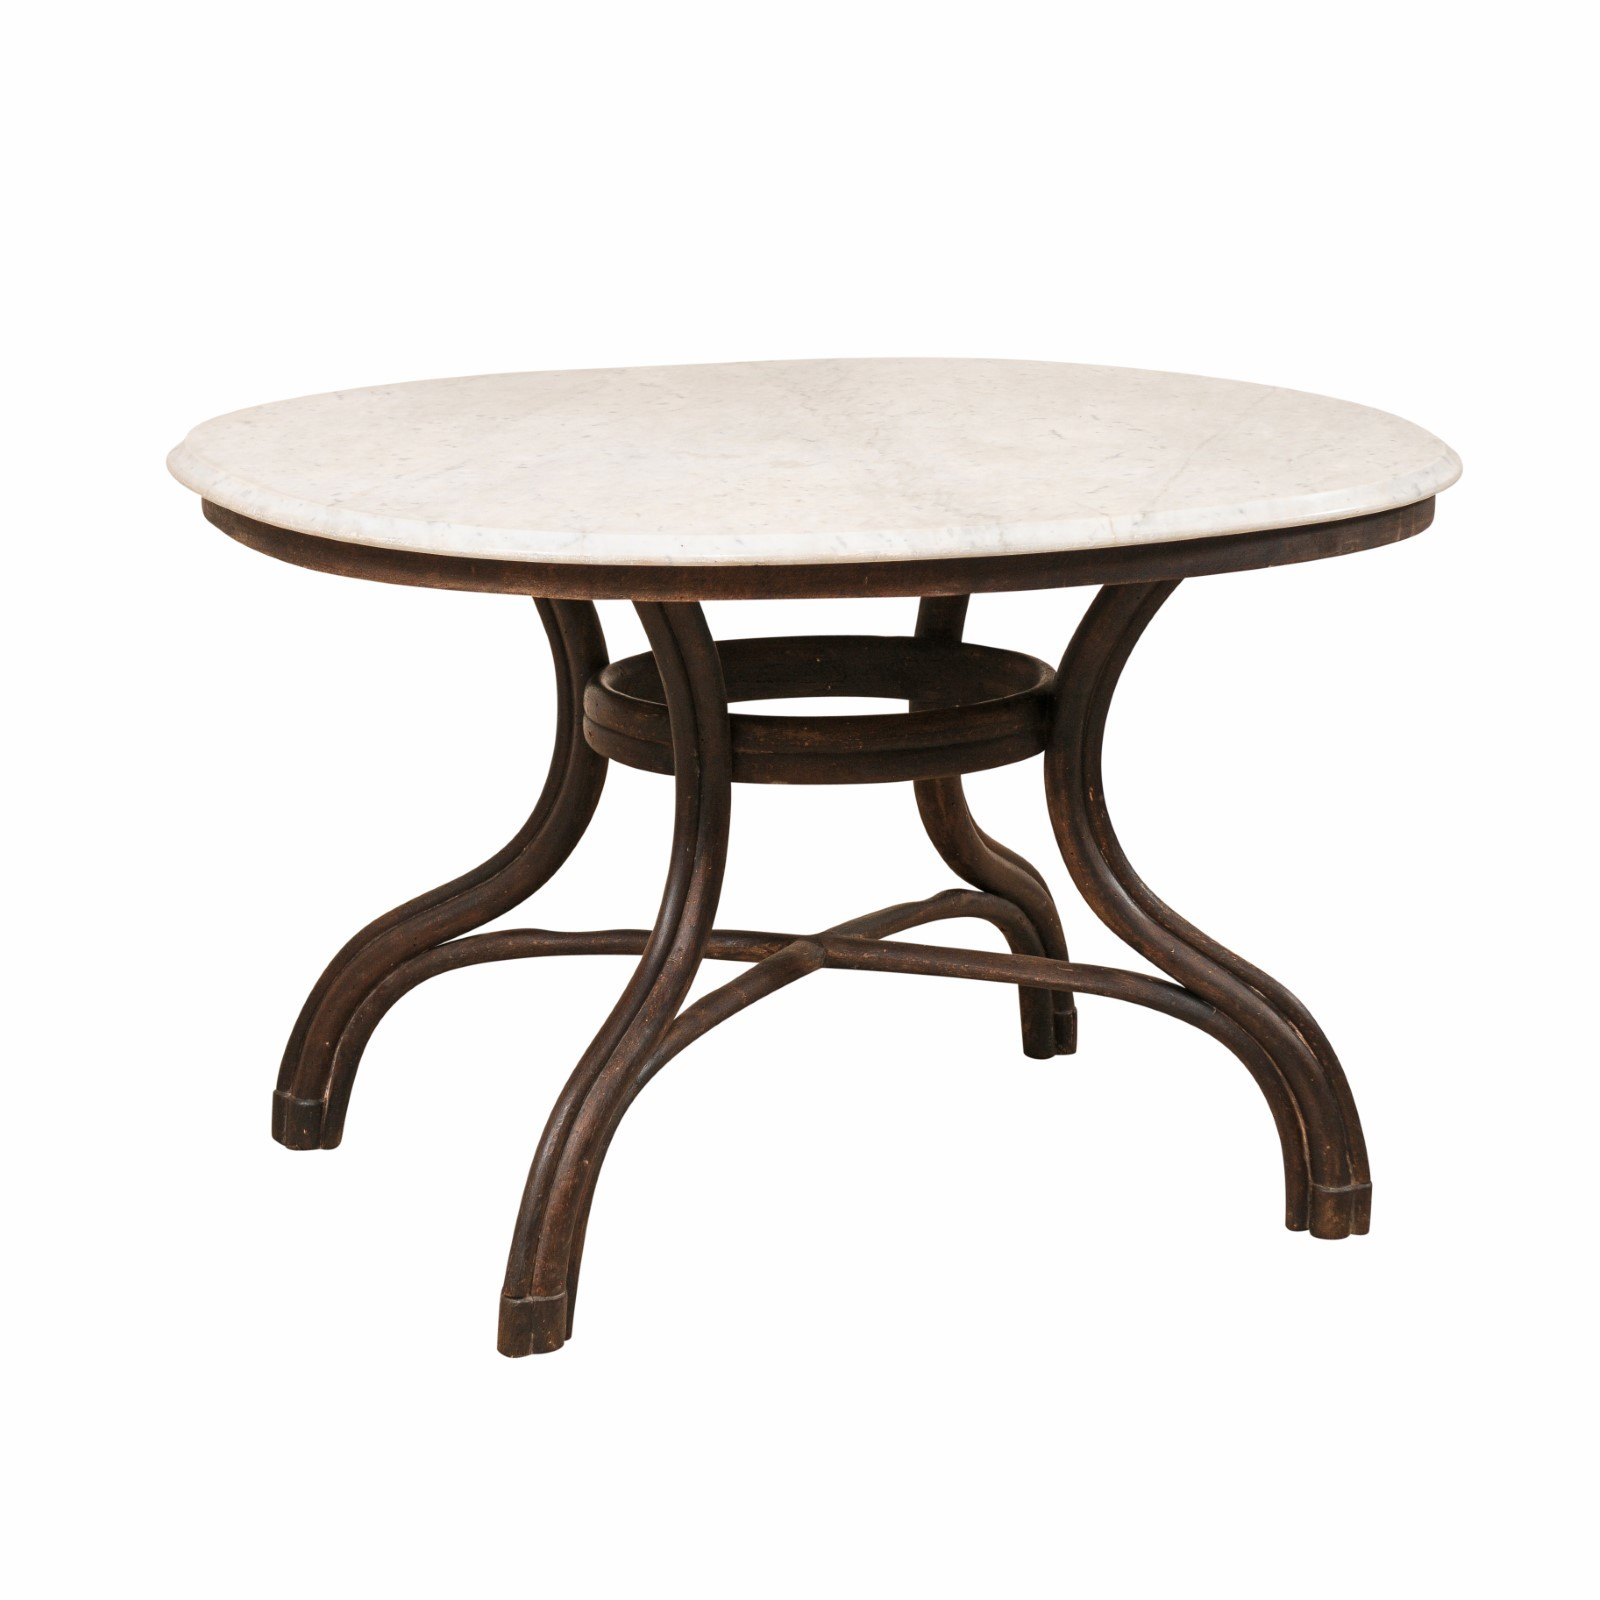 French Oval Table of Marble & Bentwood